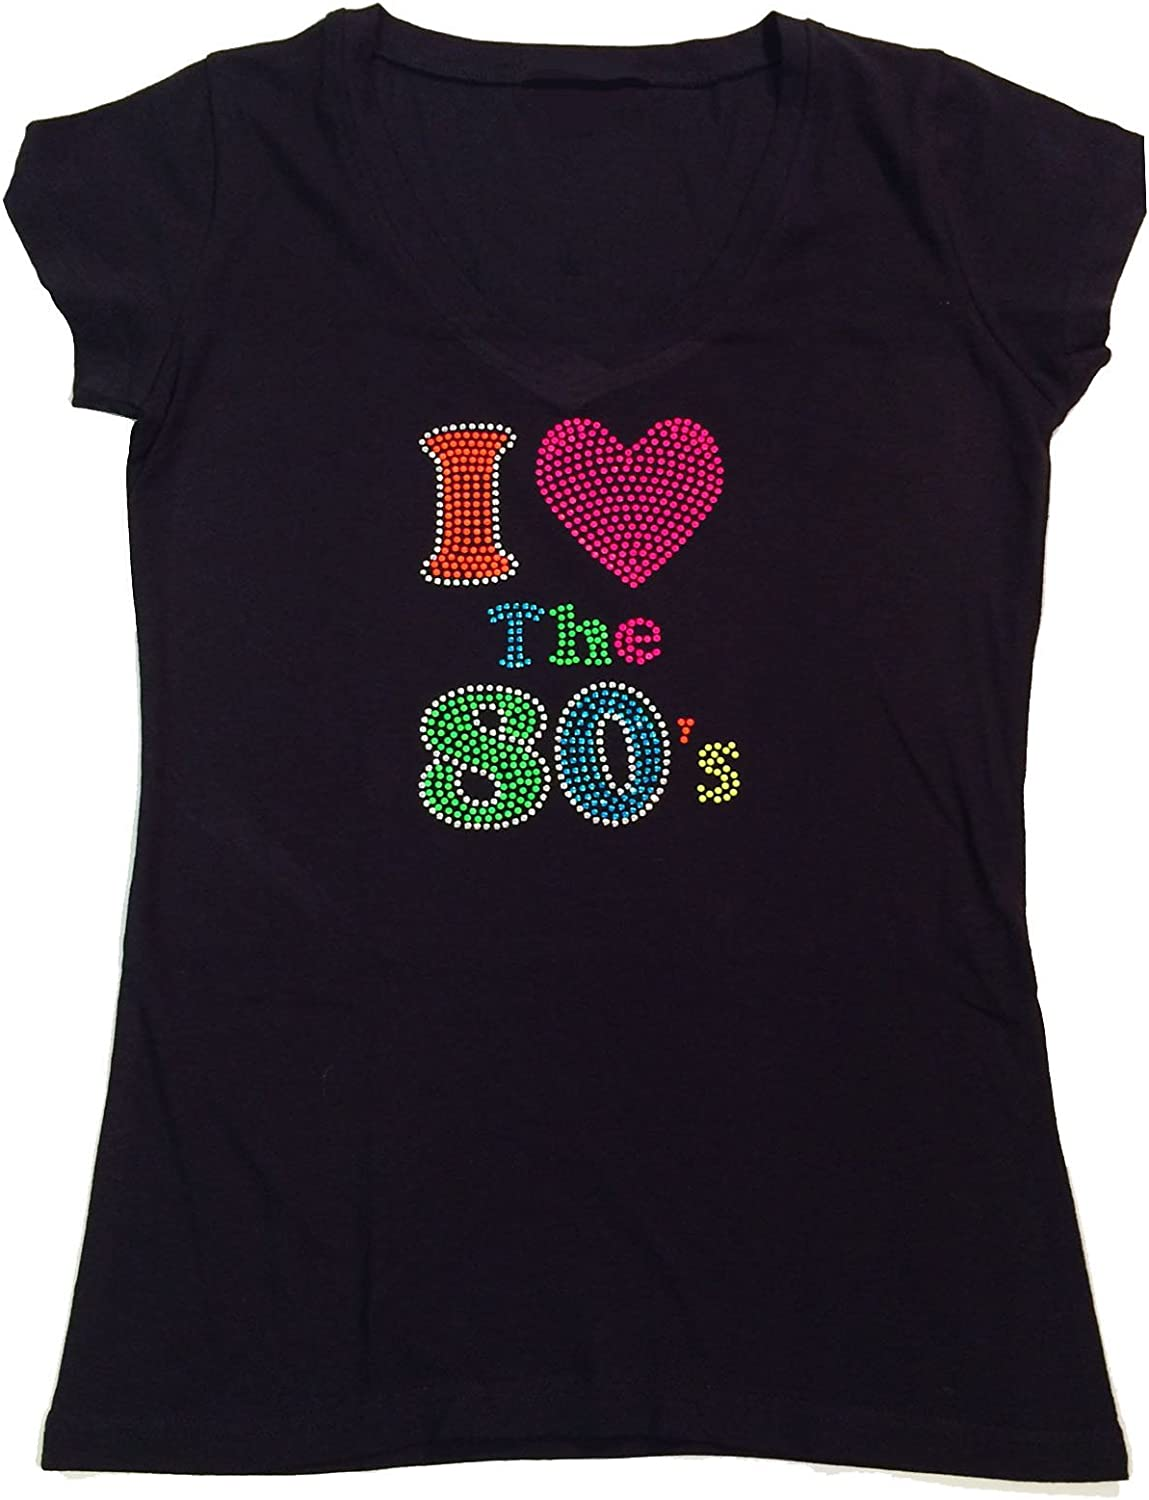 BACK TO THE EIGHTIES 80s  Music Ladies Fitted t Shirt With Rhinestuds ANY SIZE